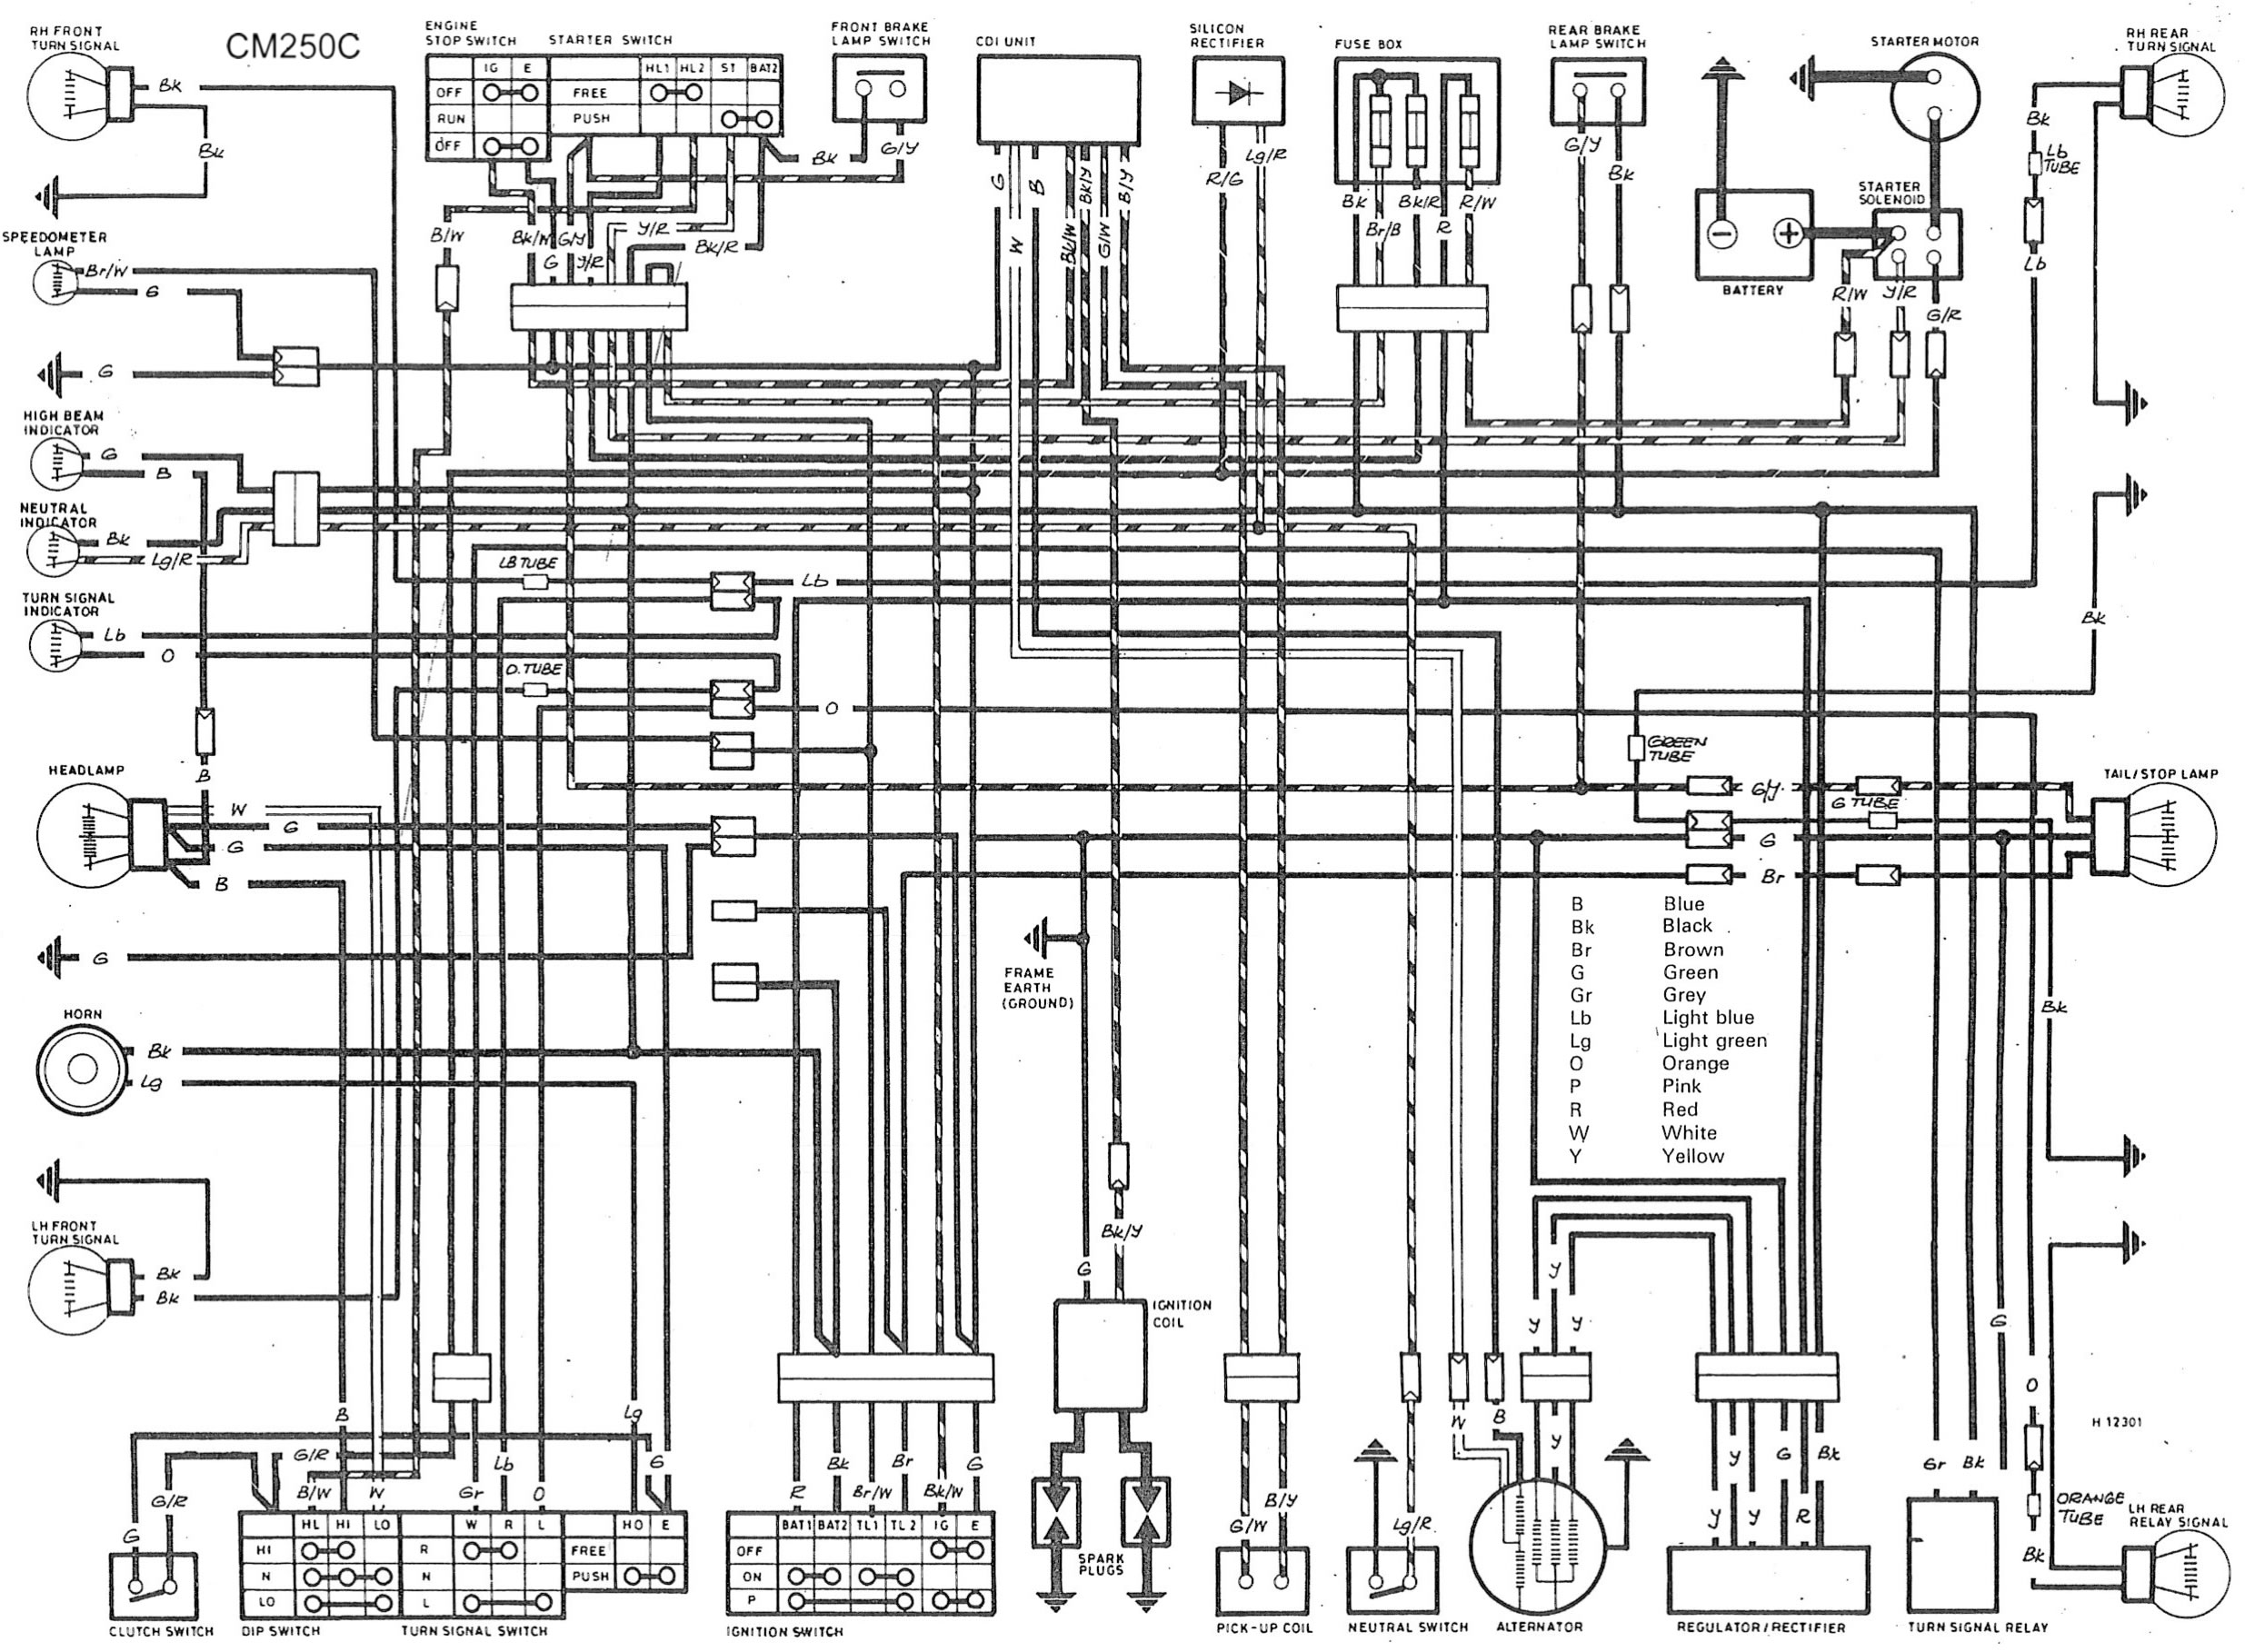 Black Max Generator Wiring Schematic Diagrams 12 Volt Charging System Diagram Honda Cm 250 Custom Motorcycle Cm250c Rh Chrisharrison Net Voltage